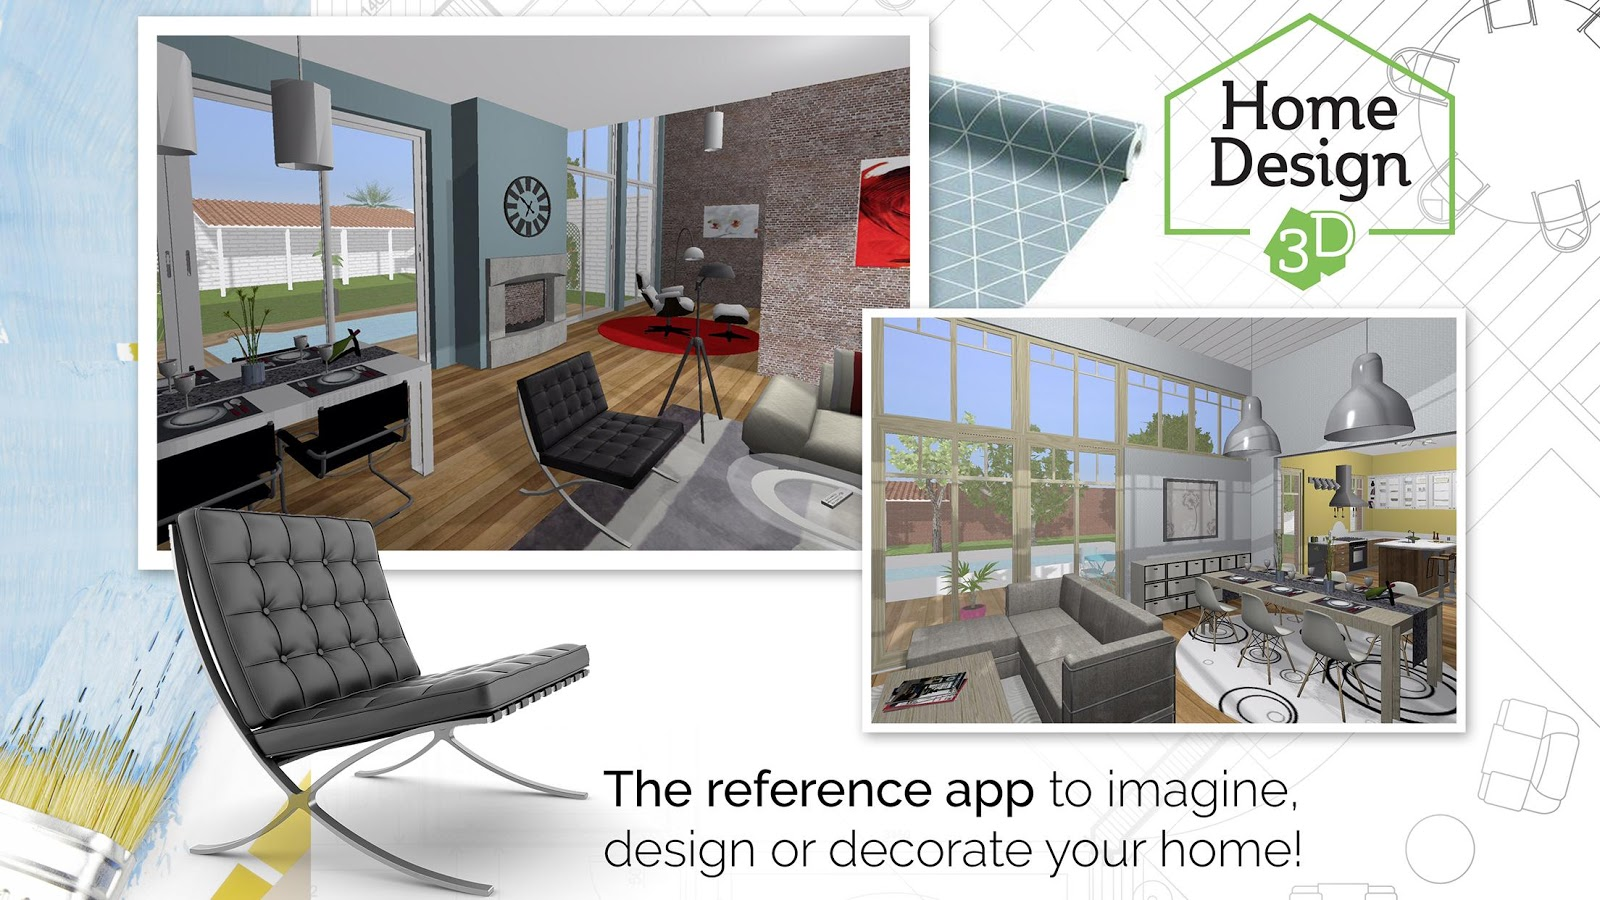 Home Design 3D   FREEMIUM  screenshot. Home Design 3D   FREEMIUM   Android Apps on Google Play